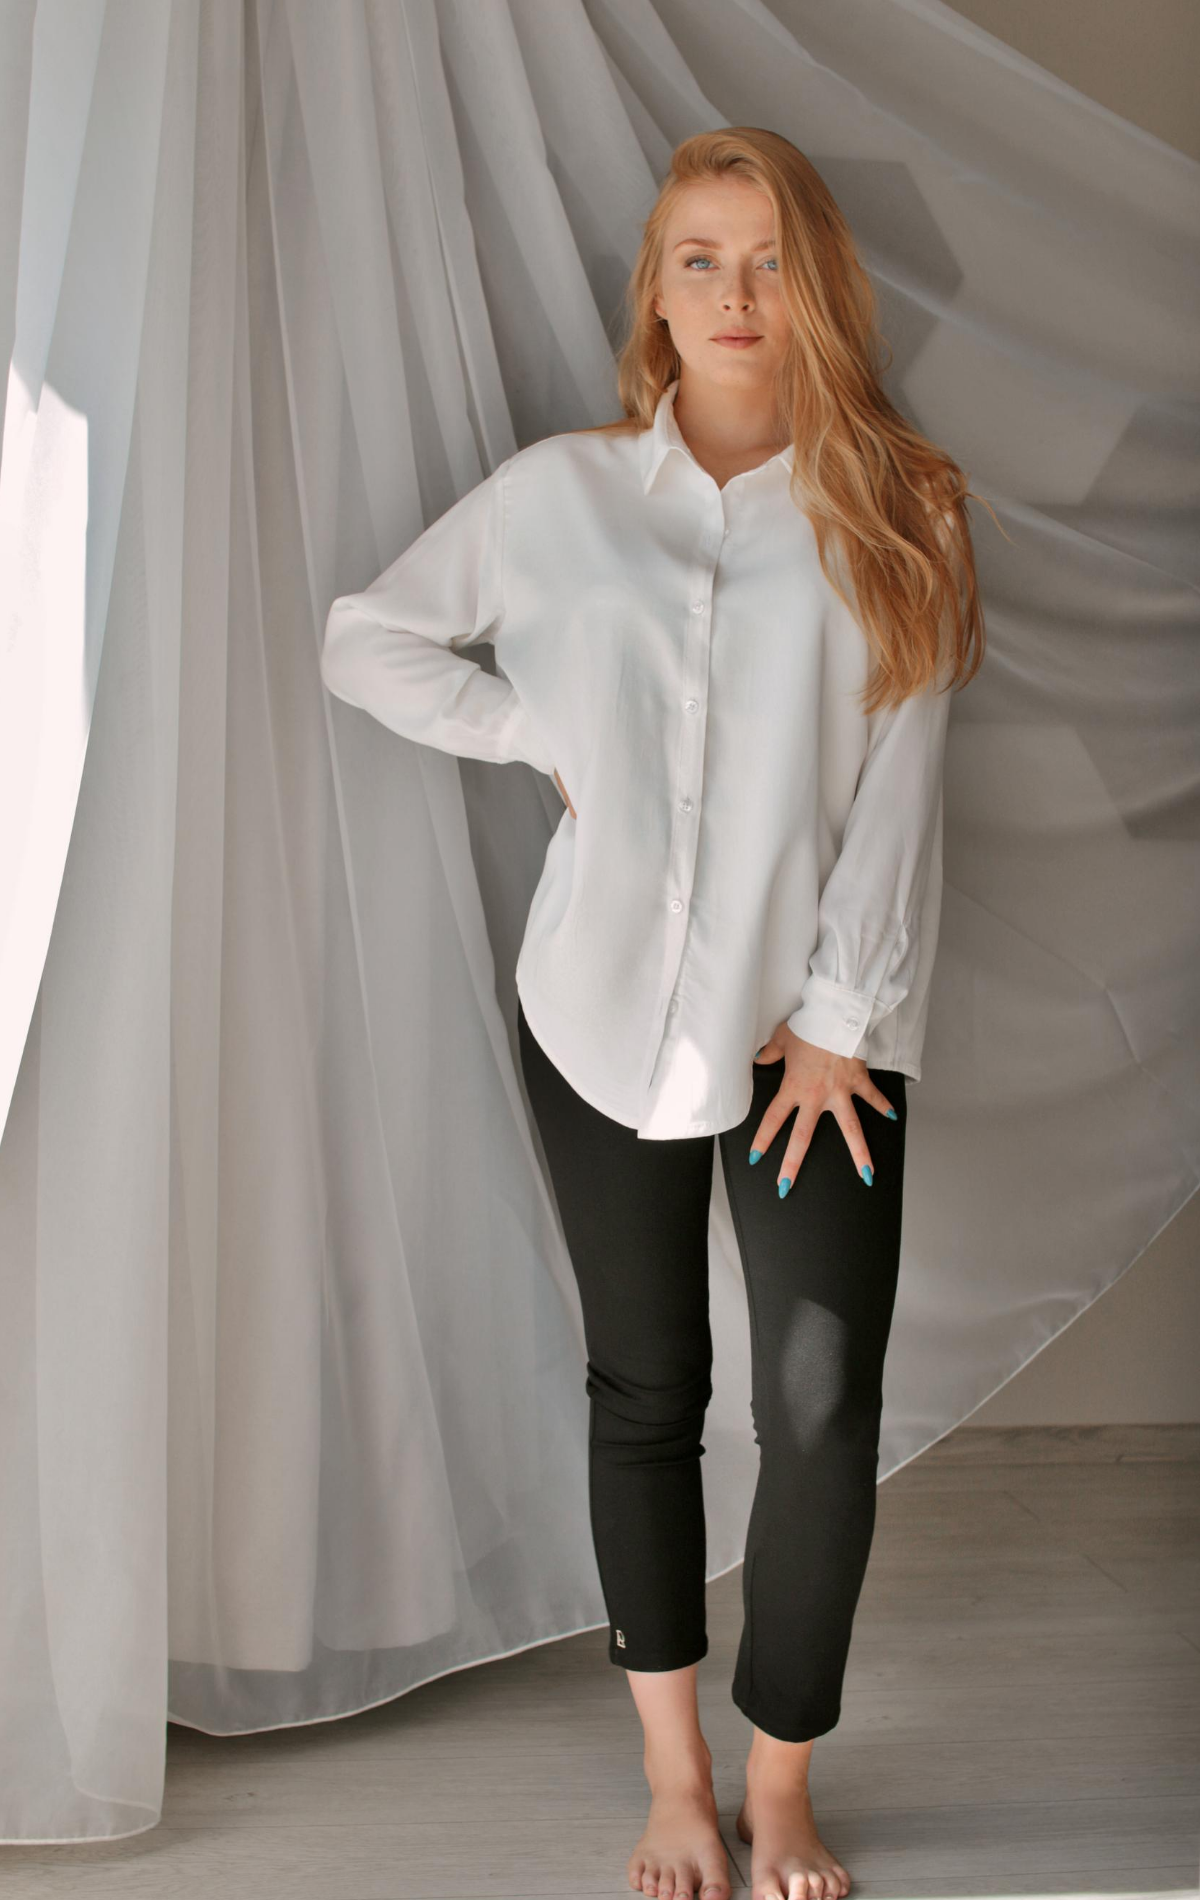 A model in the blouse